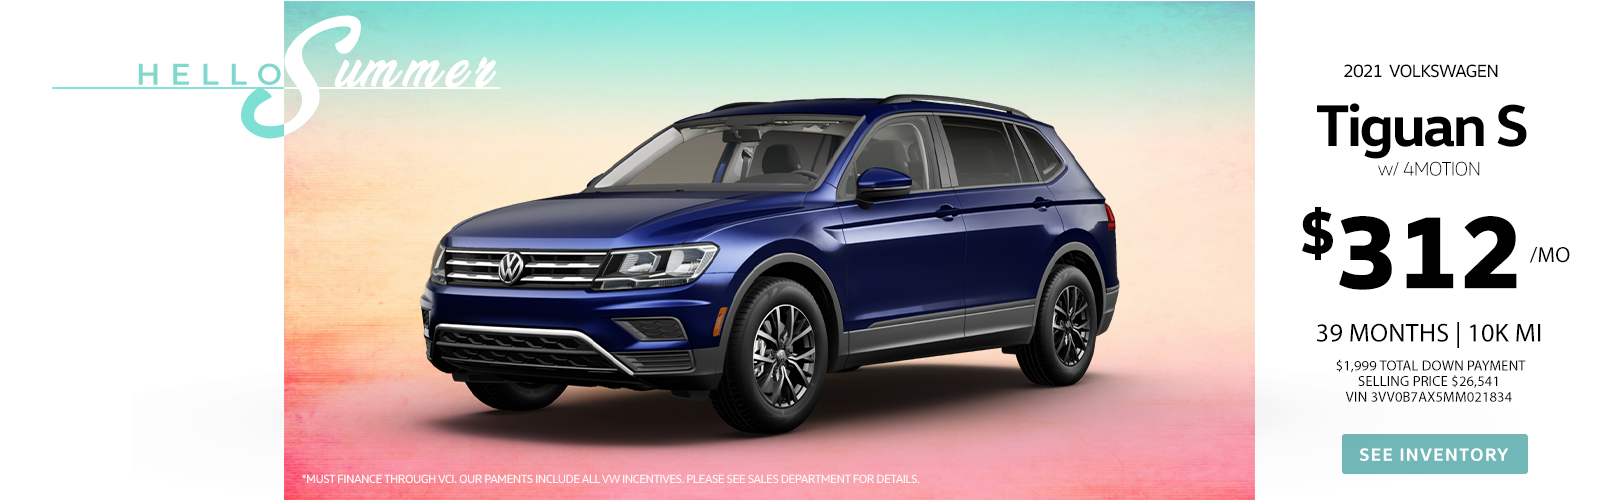 Tiguan-NorthPennVW-Banners-July2021